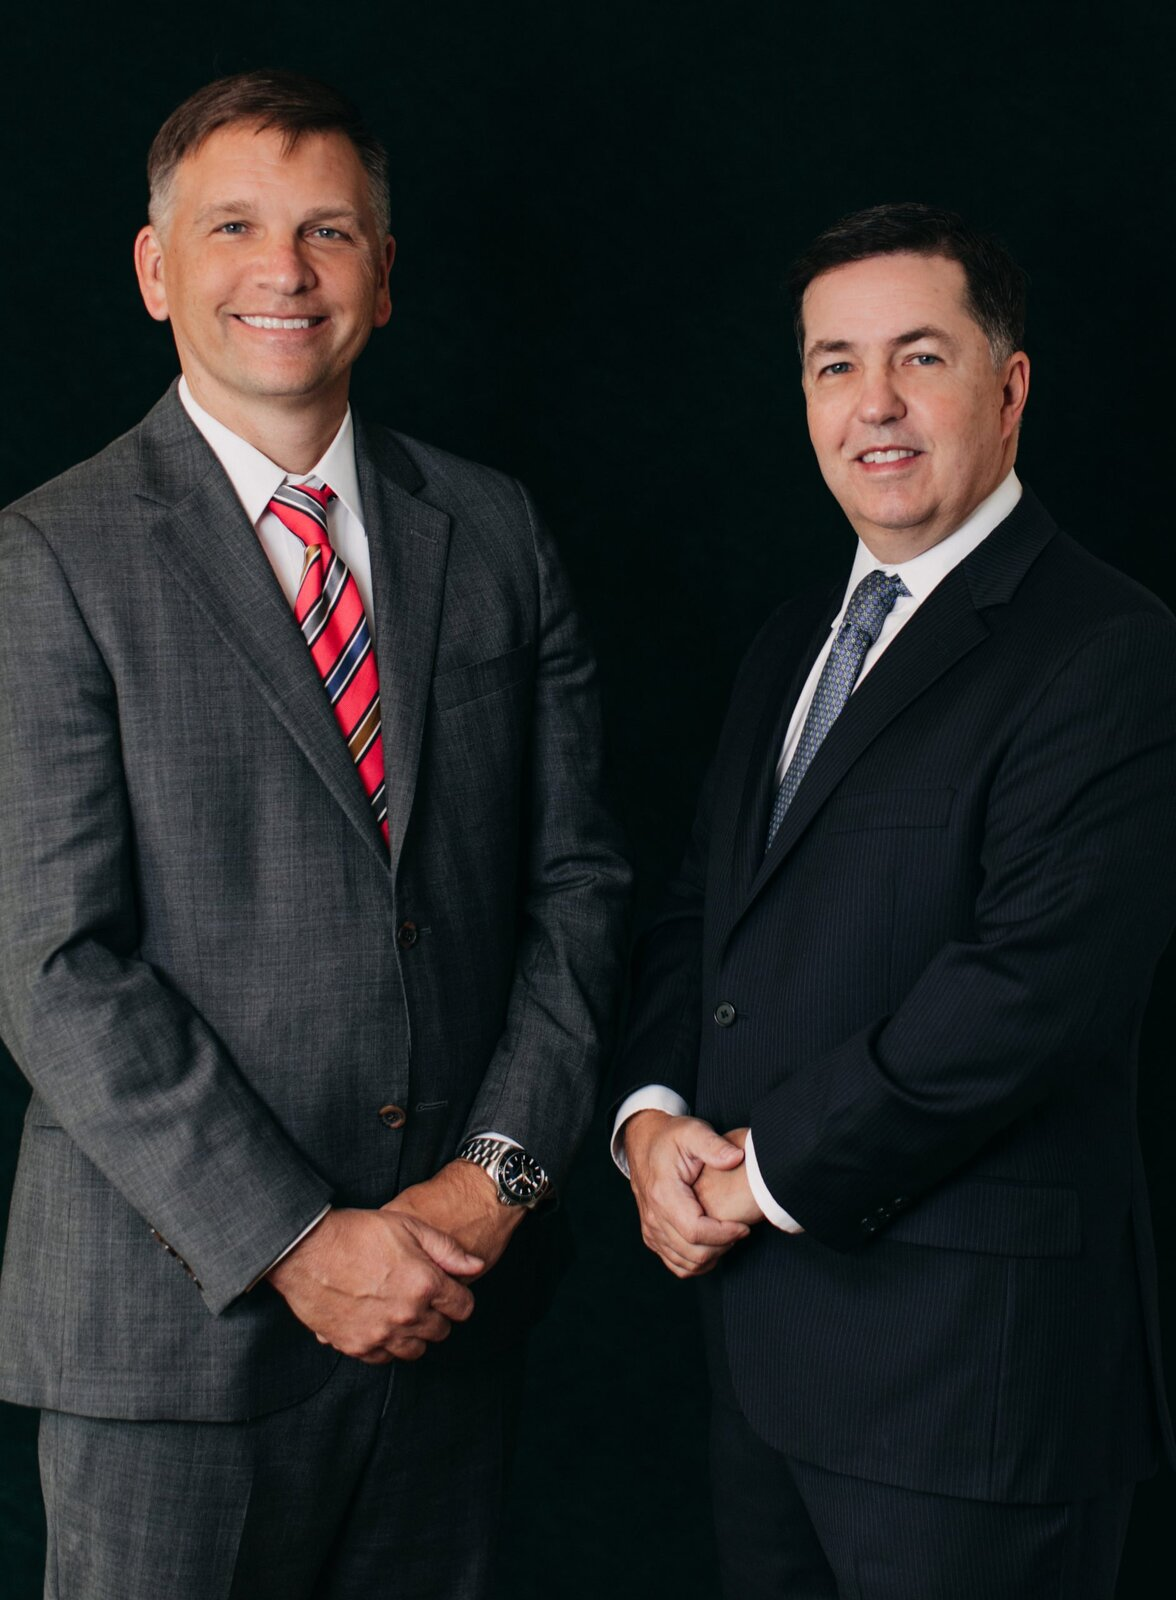 Broden Mickelsen Healthcare Fraud Lawyers in Dallas